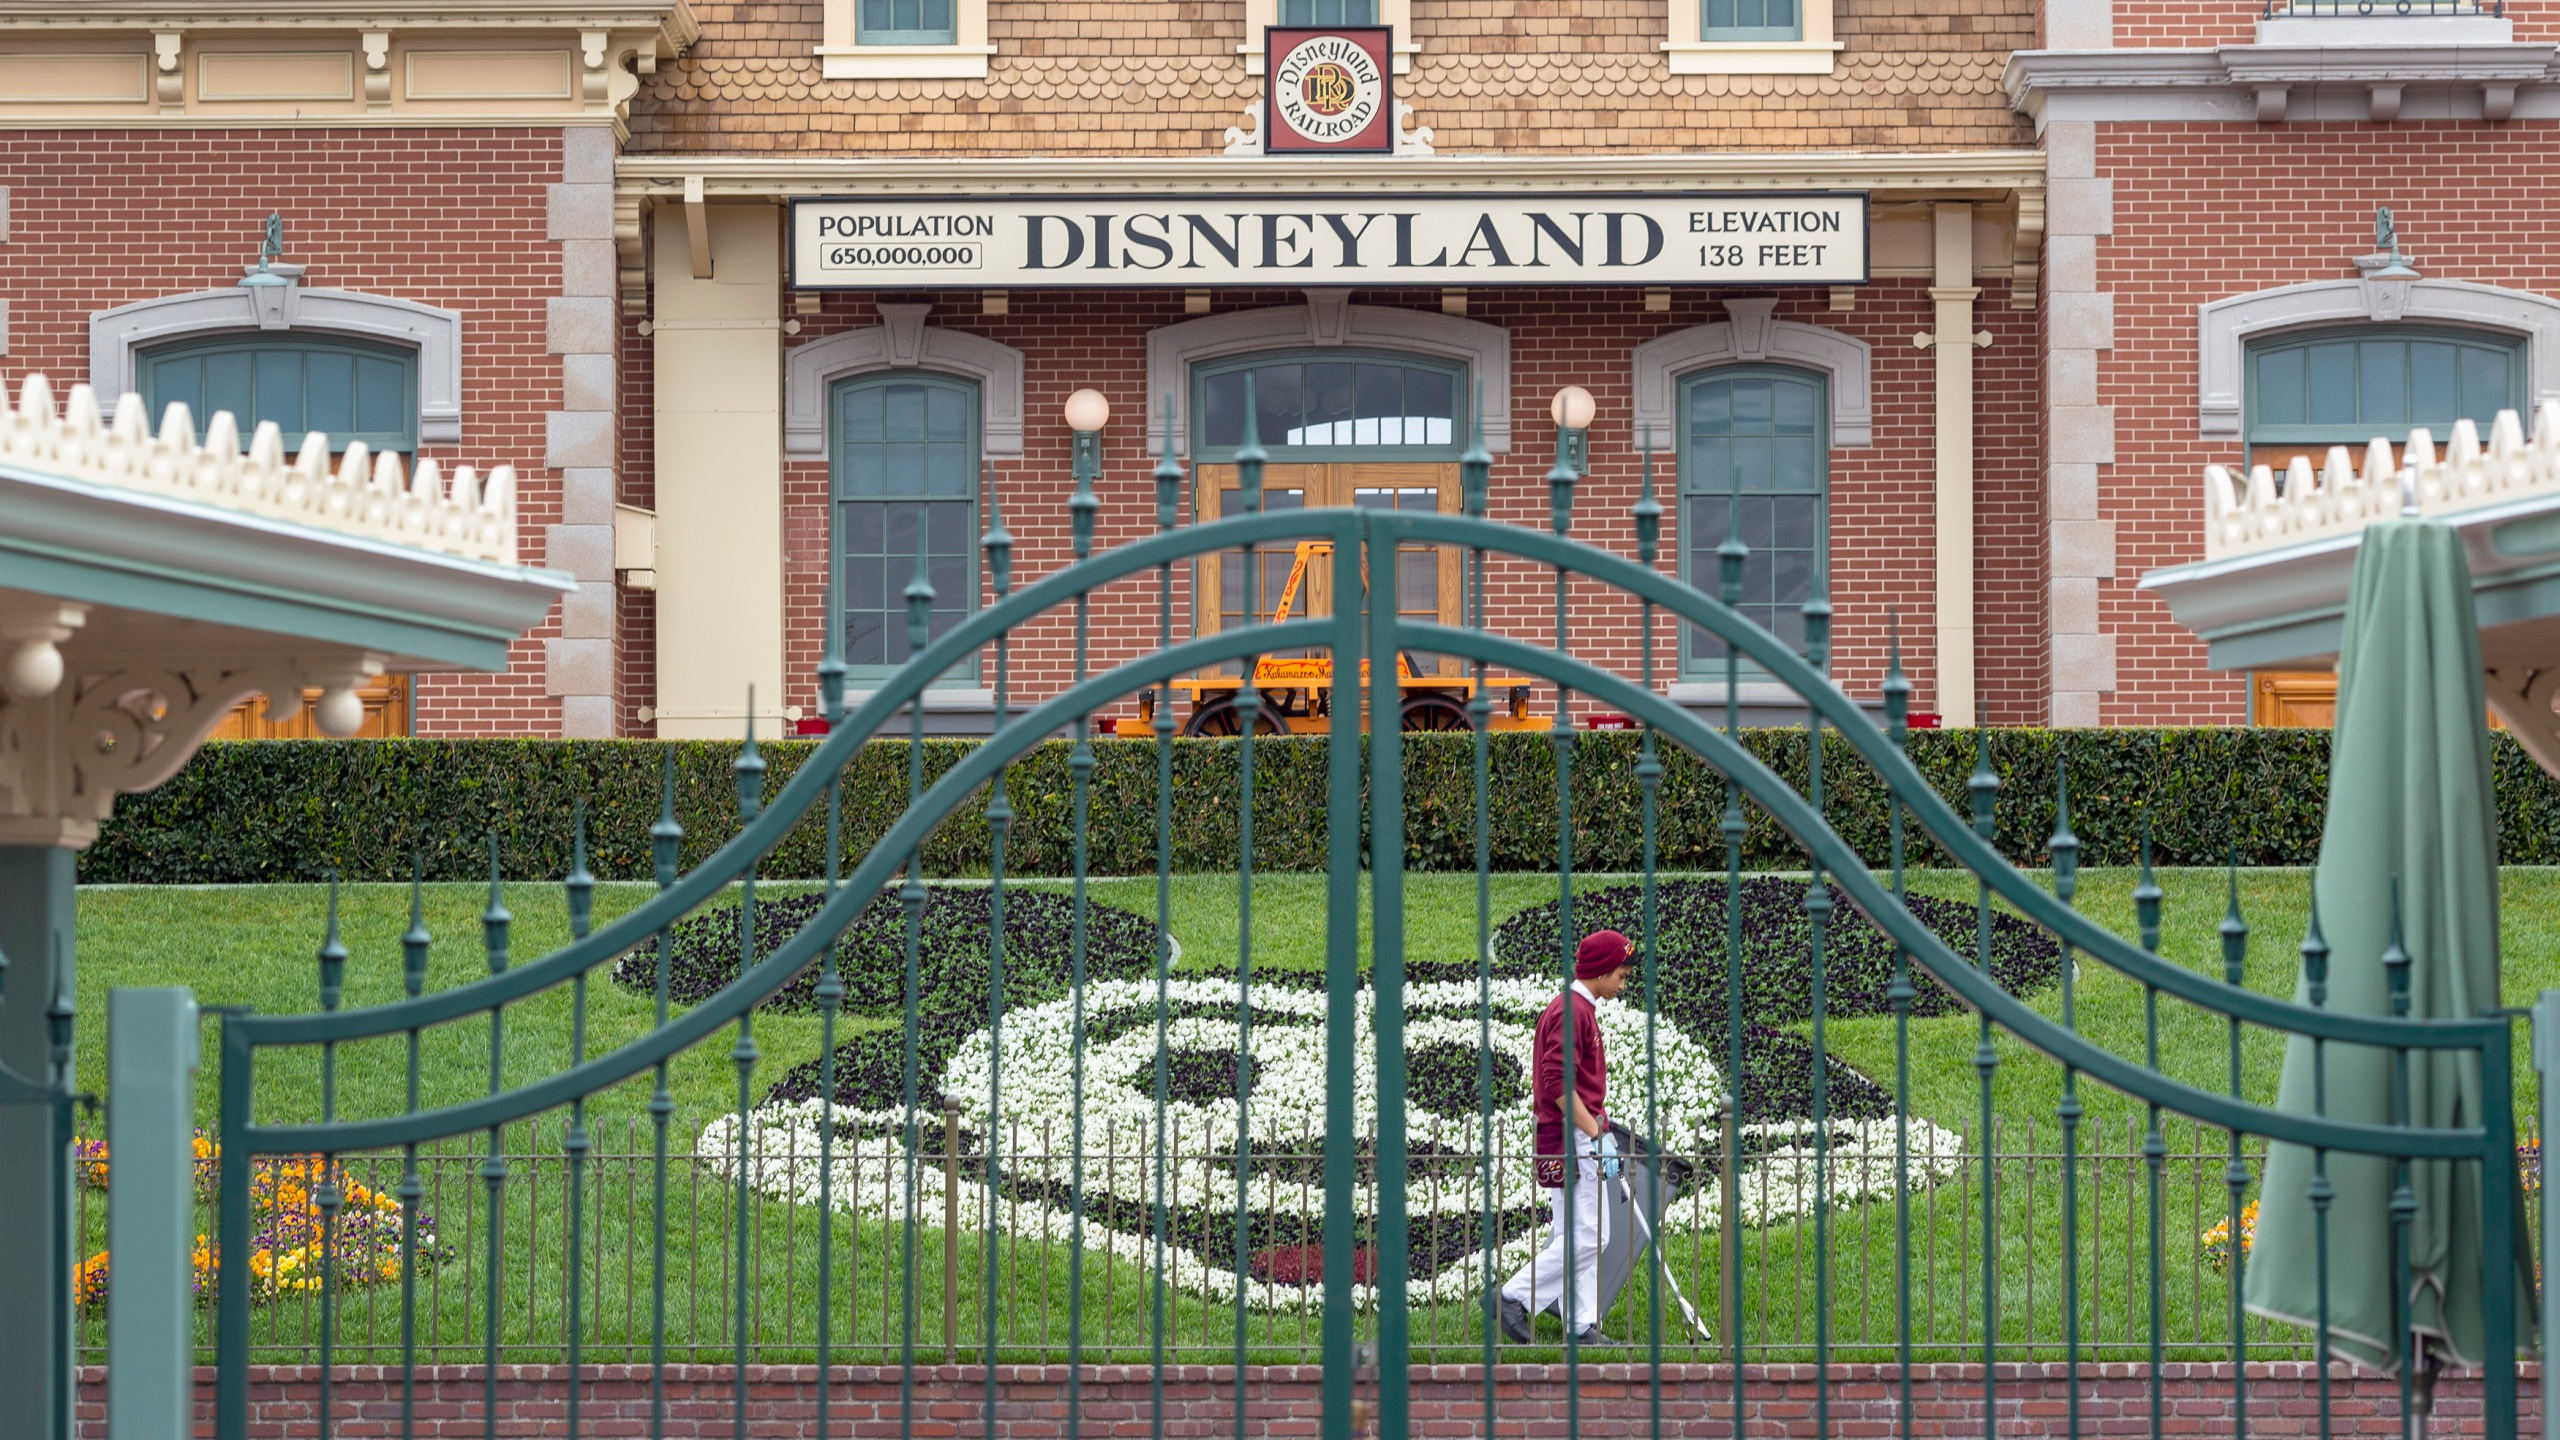 An employee cleans the grounds behind the closed gates of Disneyland Park on the first day of the closure of Disneyland and Disney California Adventure theme parks as fear of the spread of coronavirus continue, in Anaheim on March 14, 2020. (DAVID MCNEW/AFP via Getty Images)